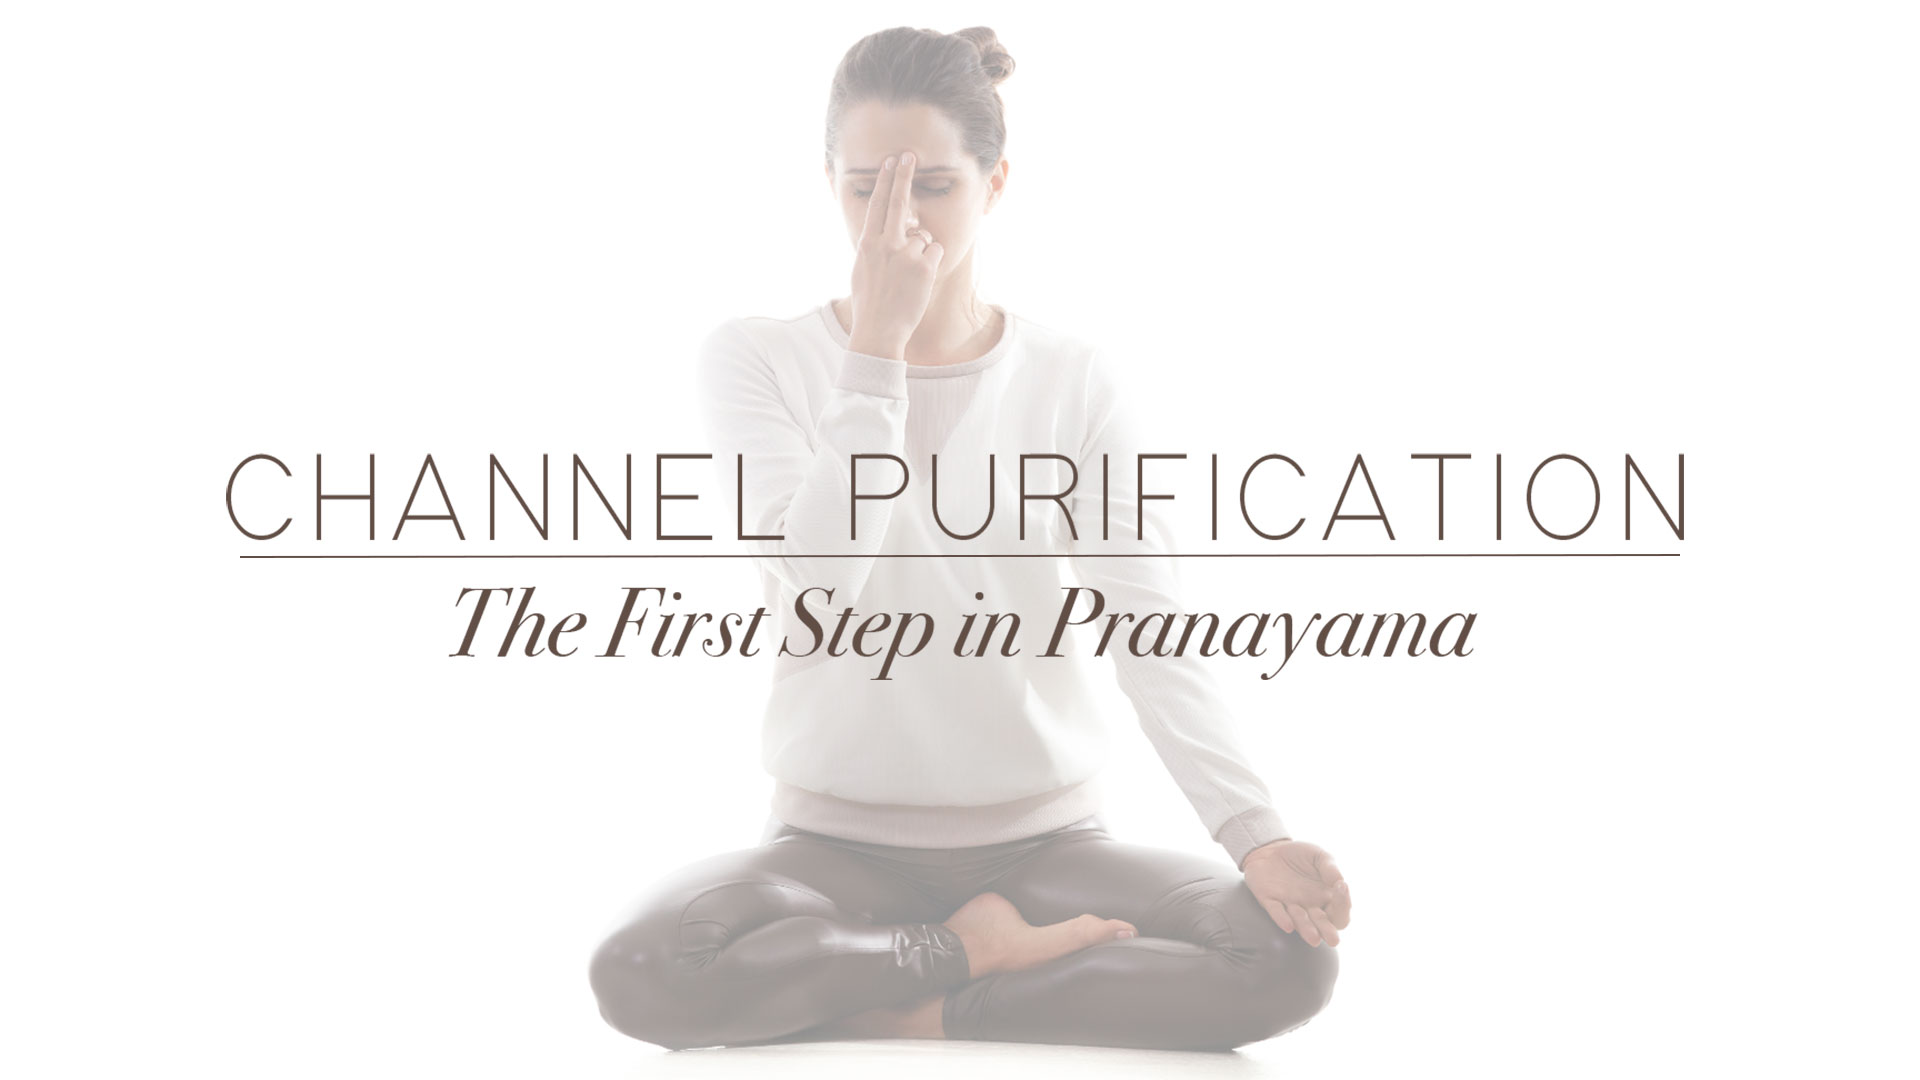 Channel Purification: The First Step in Pranayama